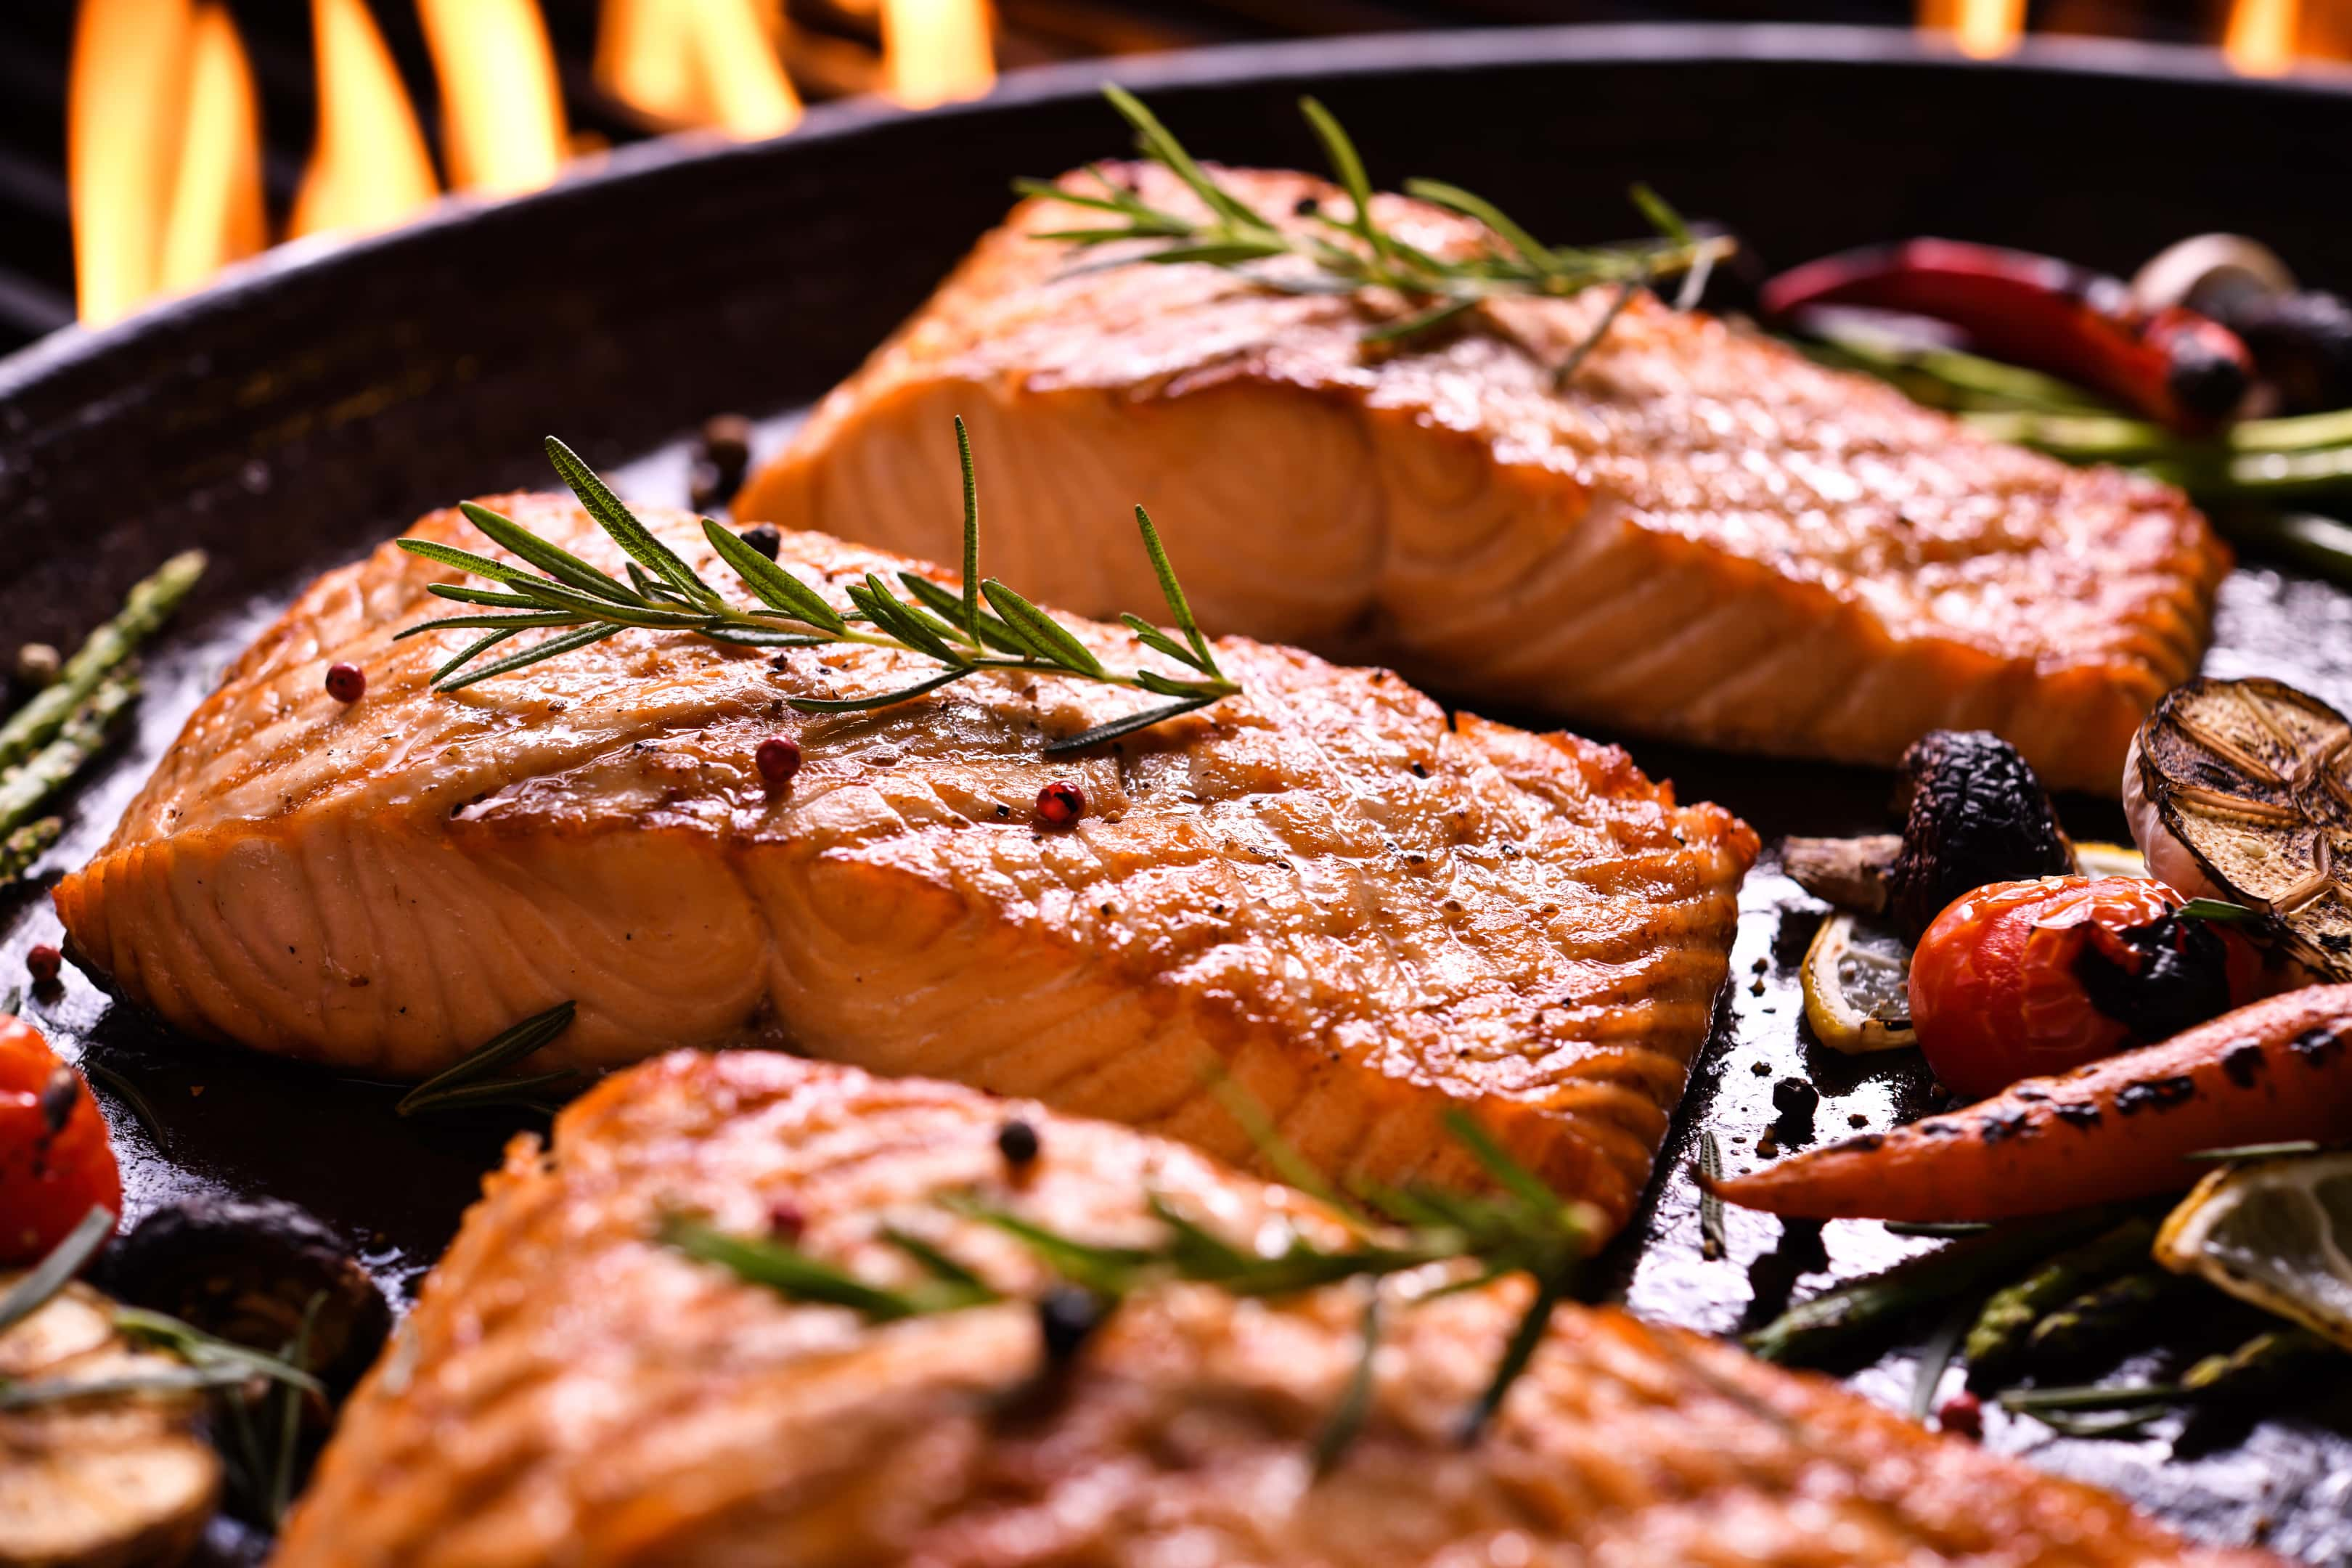 Grilled salmon fish with various vegetables in pan on flaming grill